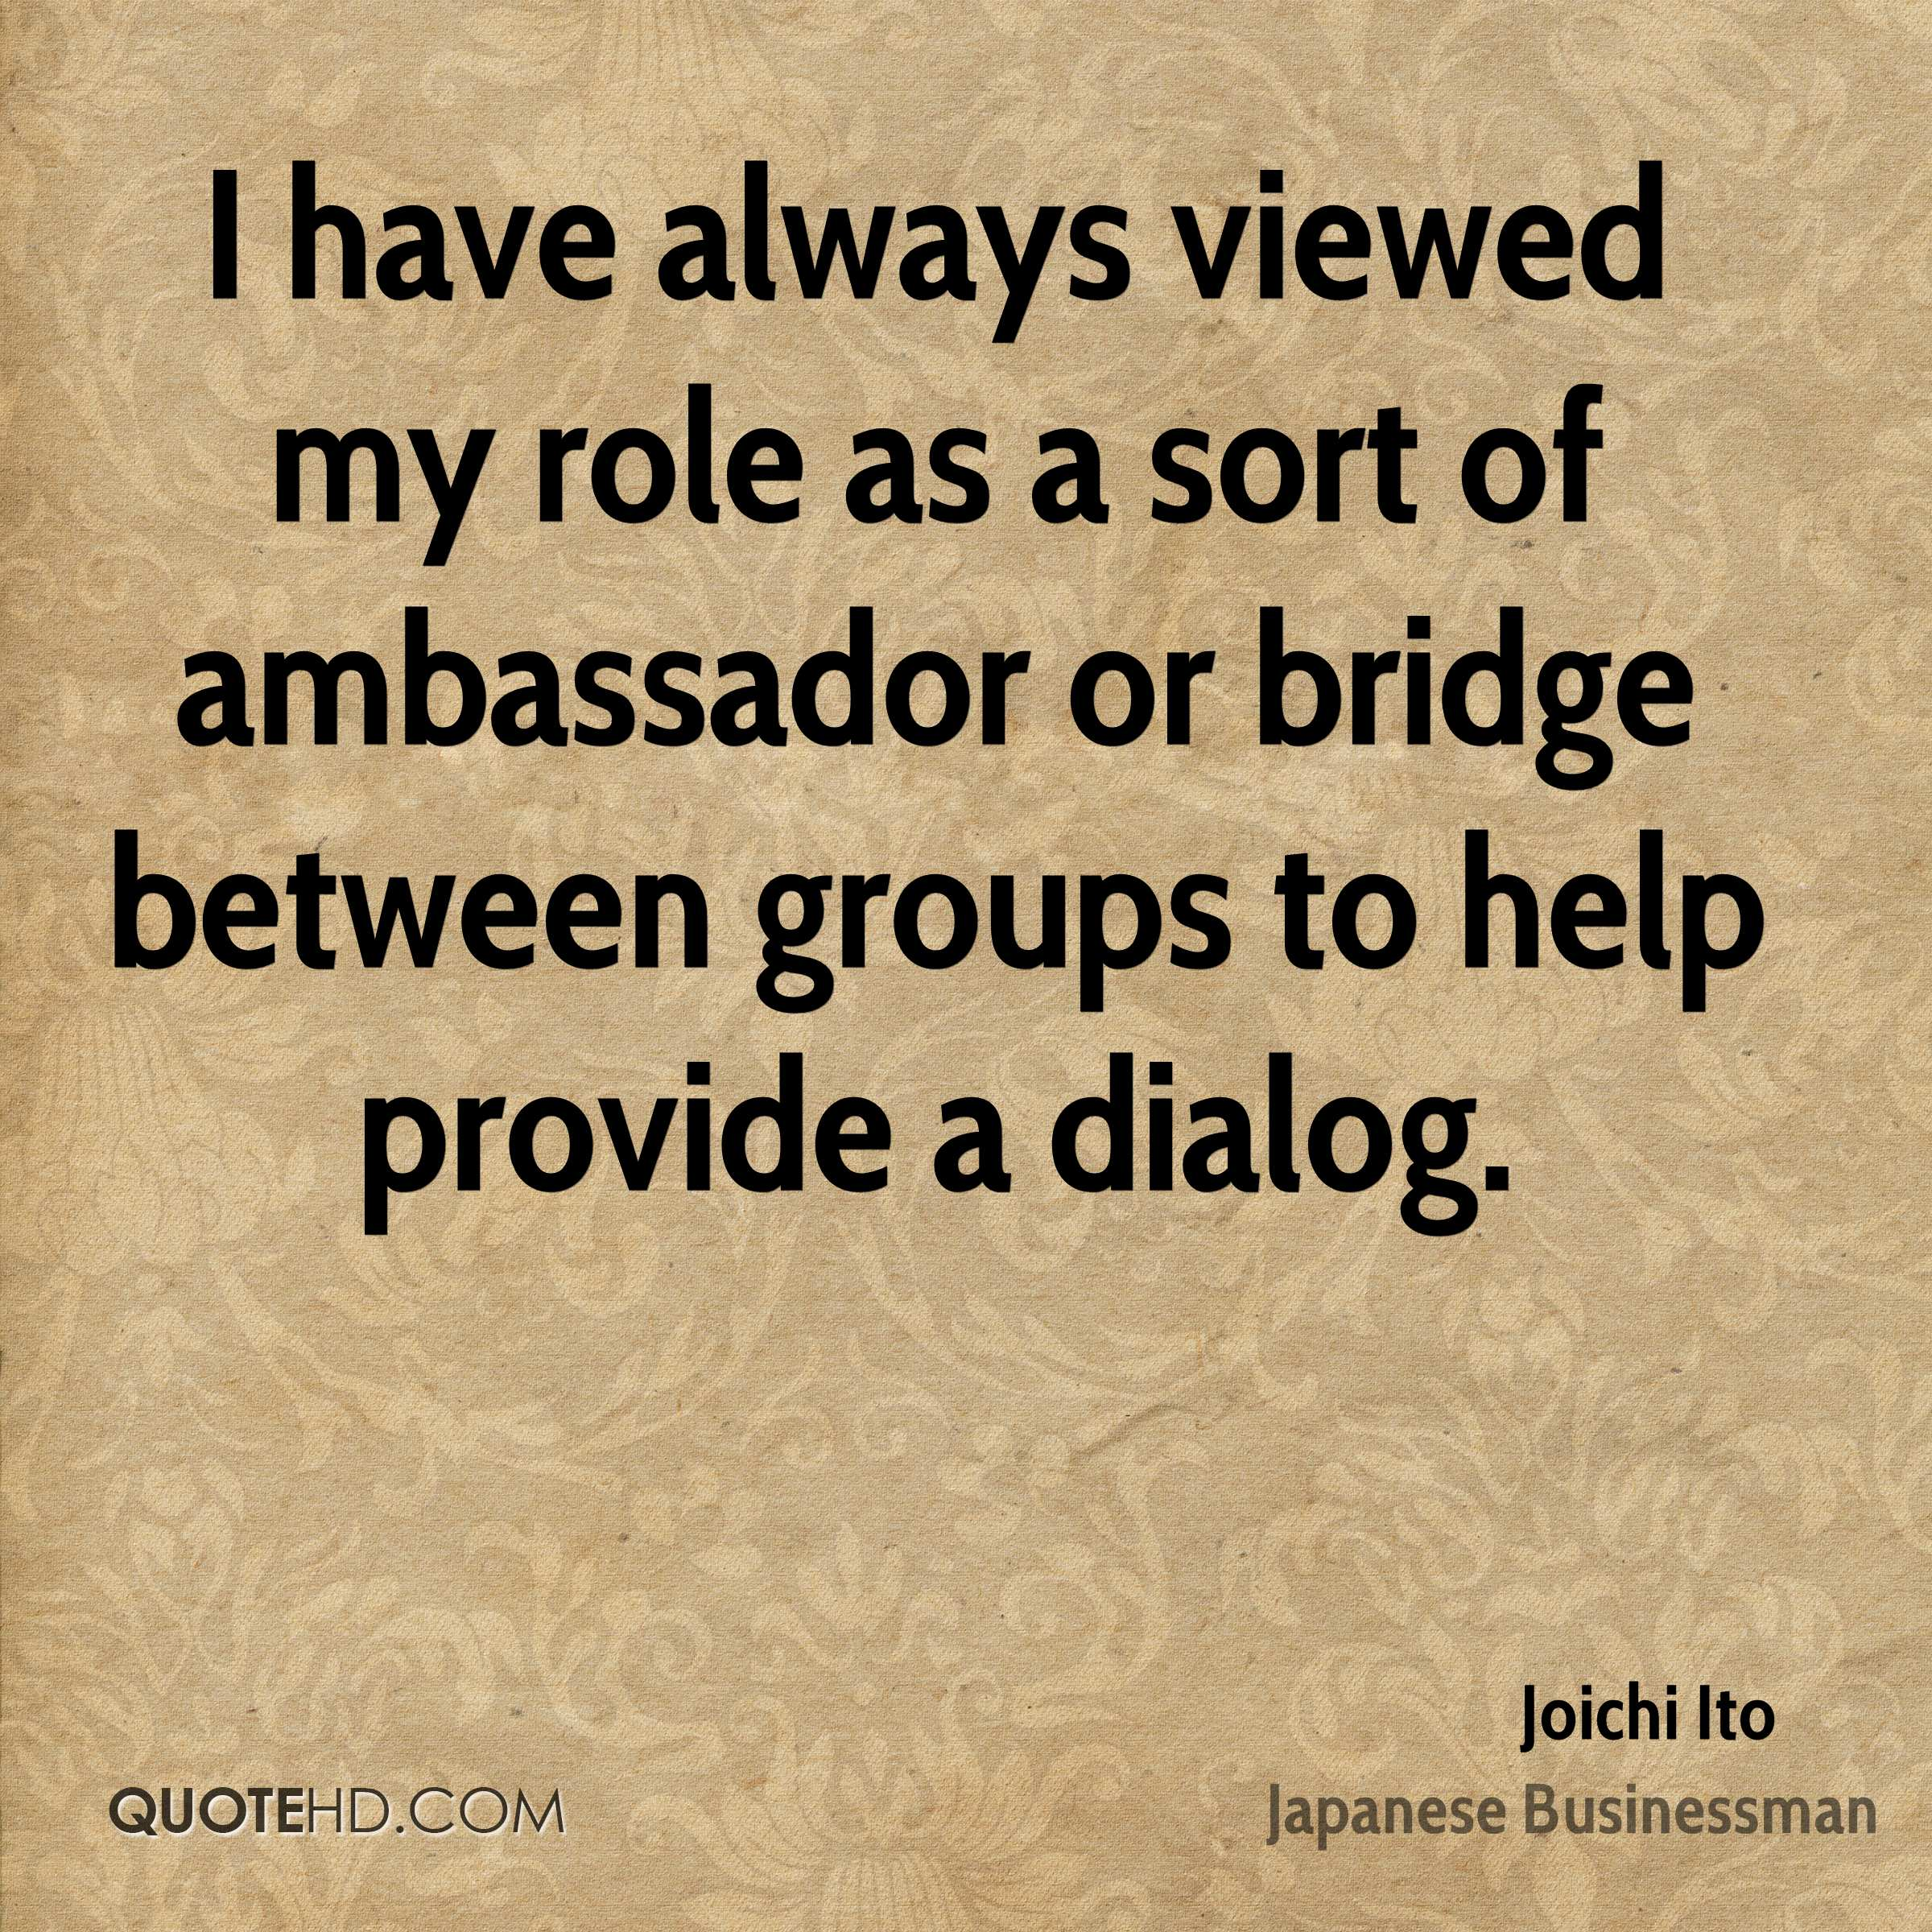 I have always viewed my role as a sort of ambassador or bridge between groups to help provide a dialog.